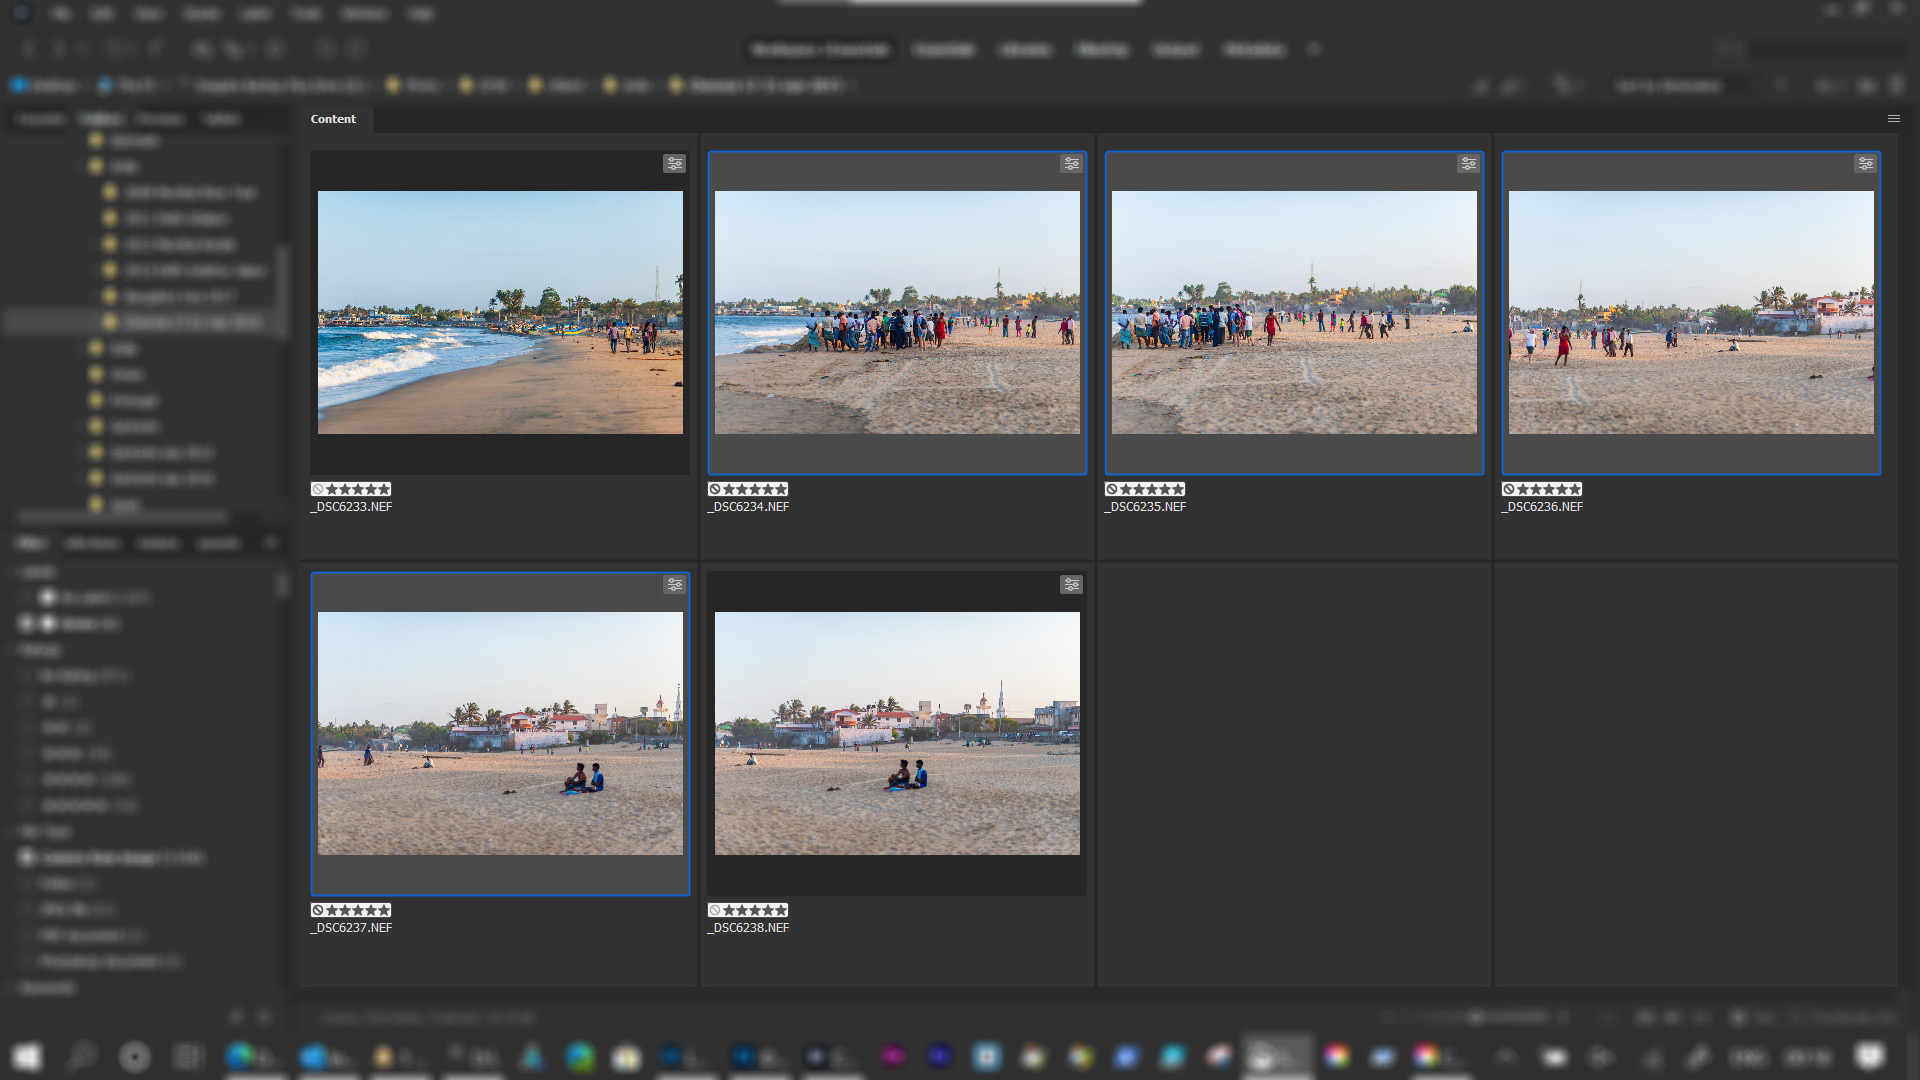 Four images selected in Adobe Bridge.